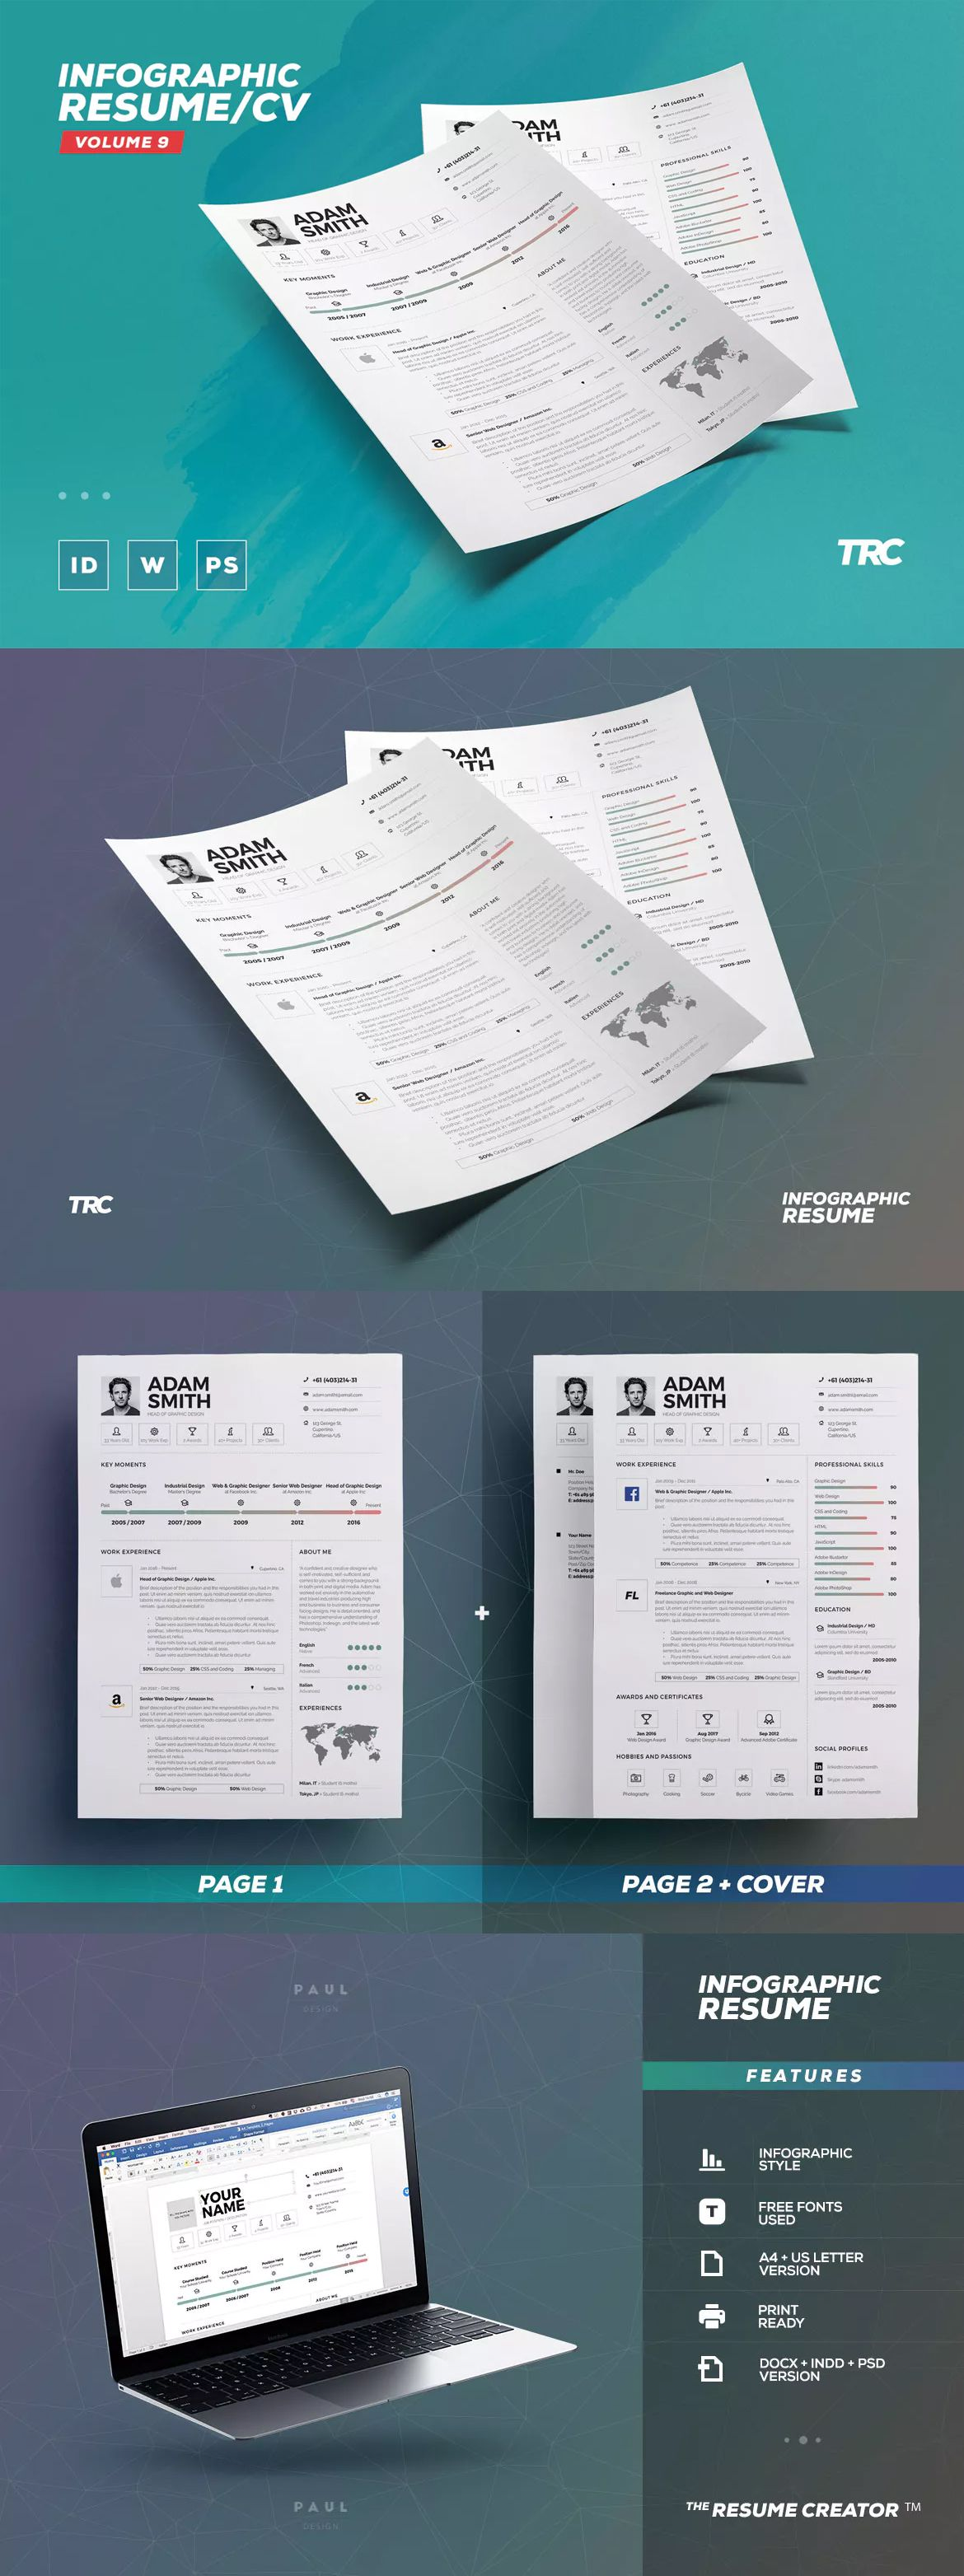 Infographic resumecv volume 9 by paolo6180 on envato